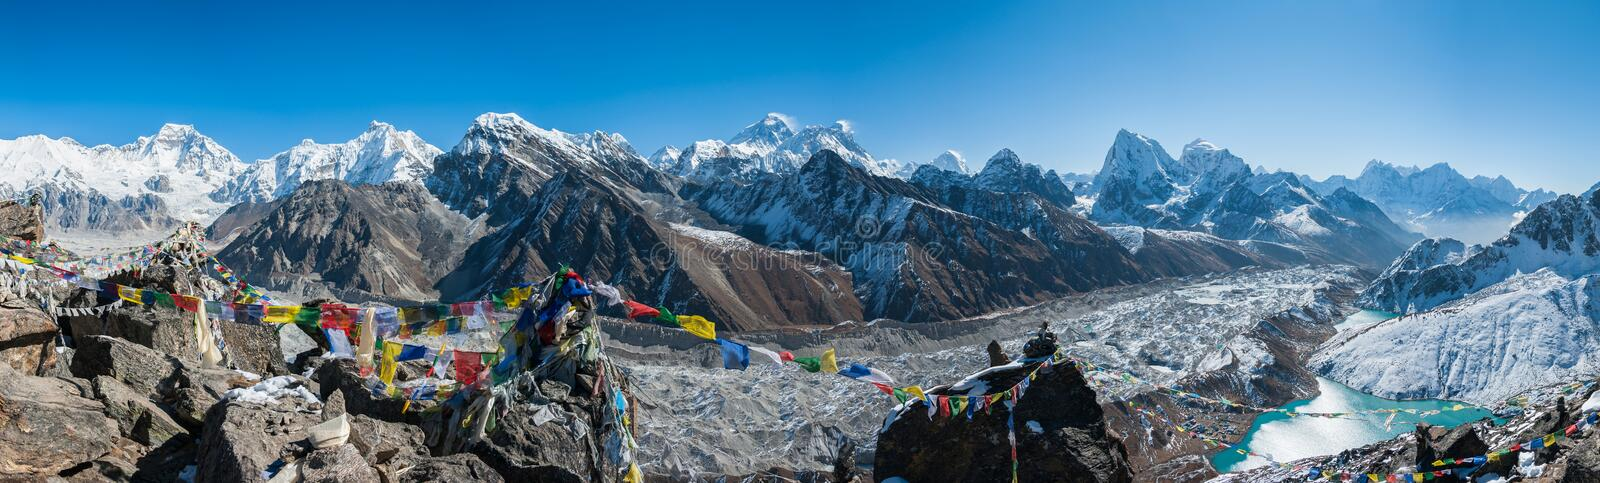 Mt. Everest and the himalayas as seen from Gokyo Ri royalty free stock photo